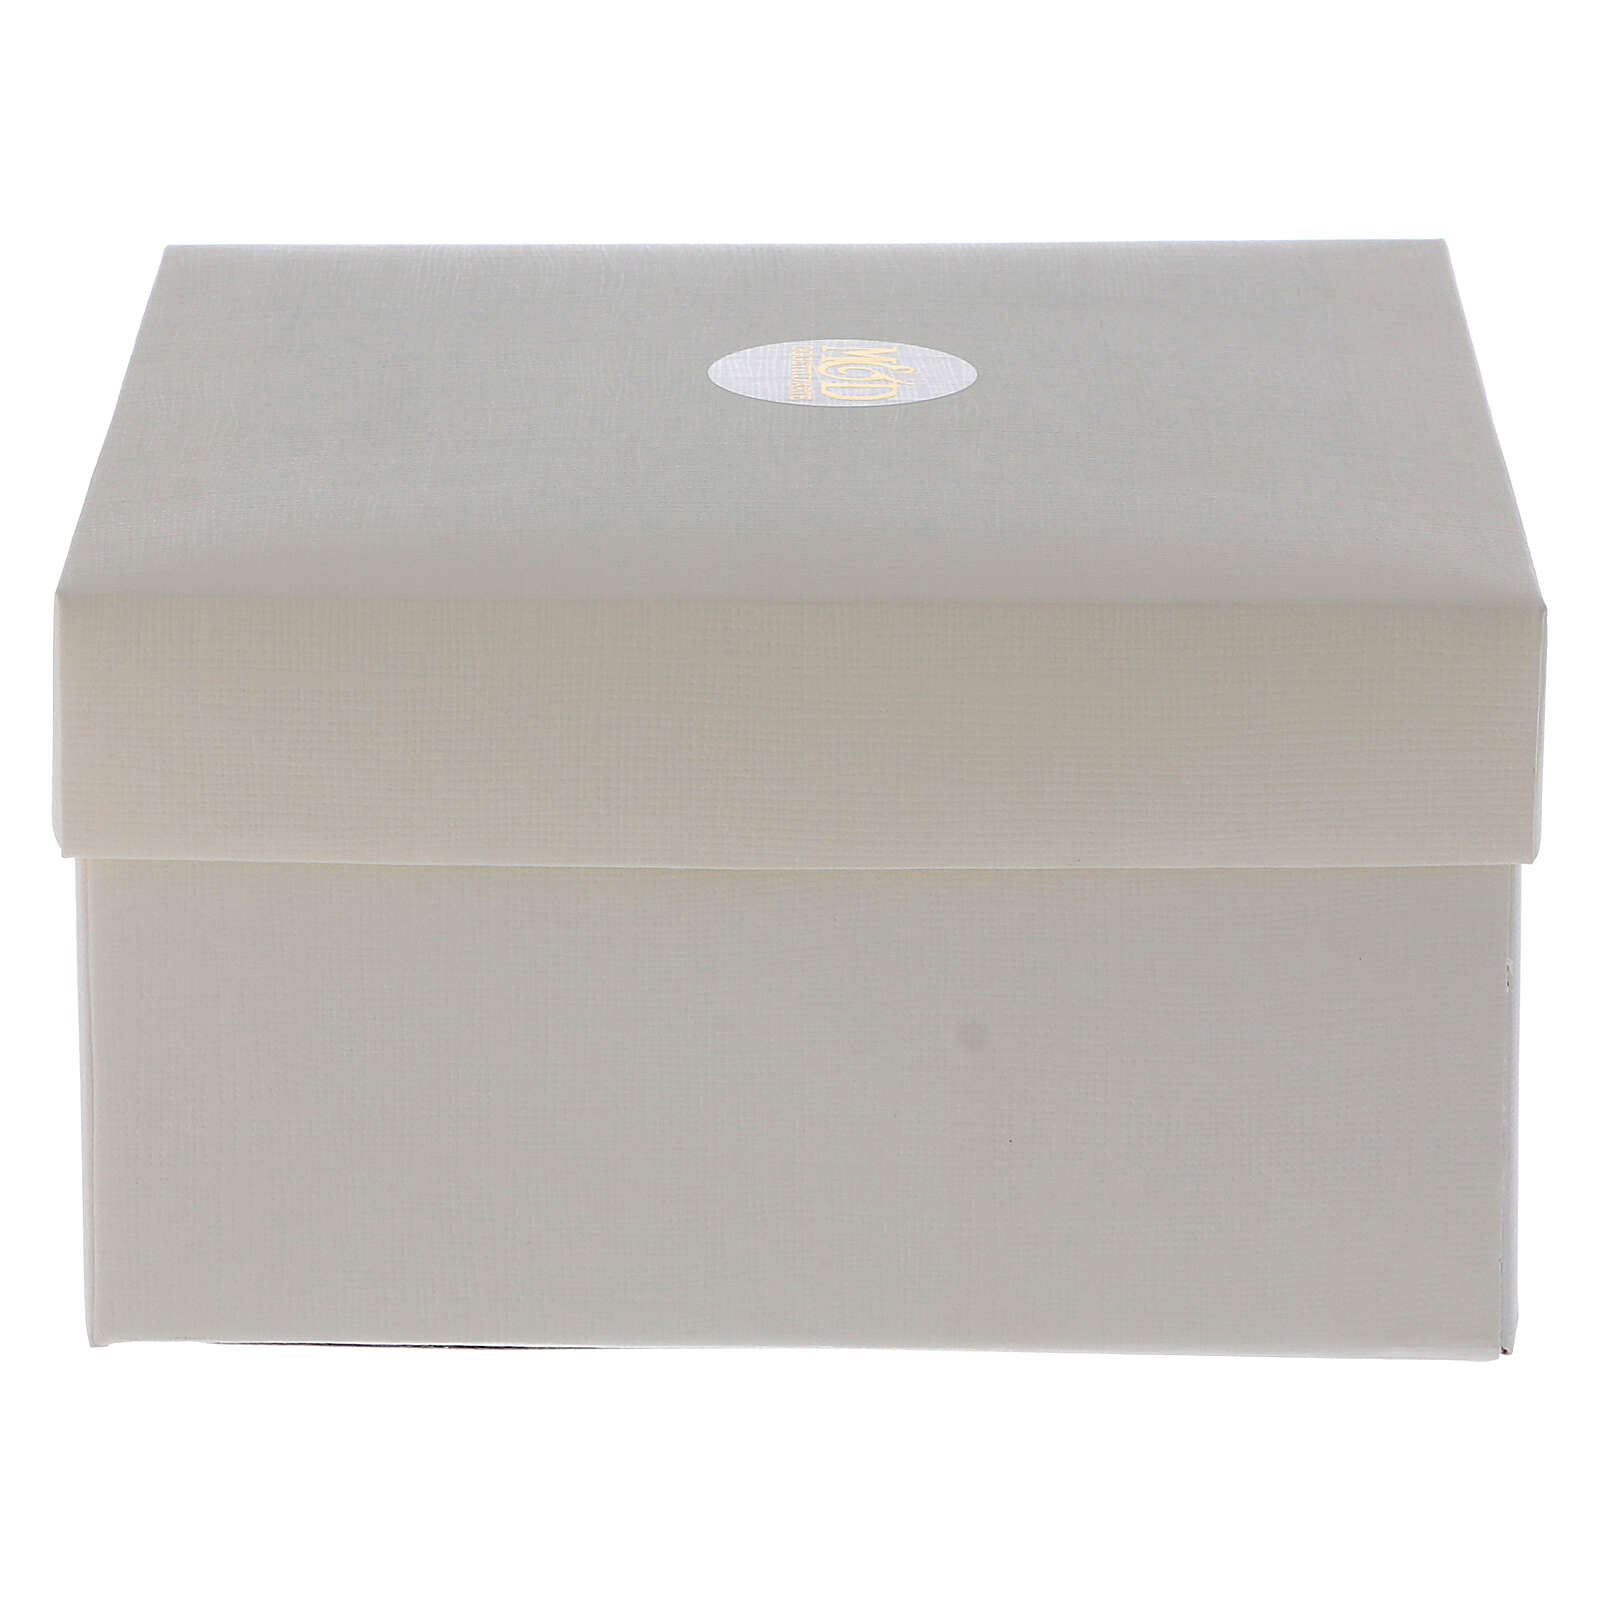 Religious favor for Confirmation box 2x2x2 in 3